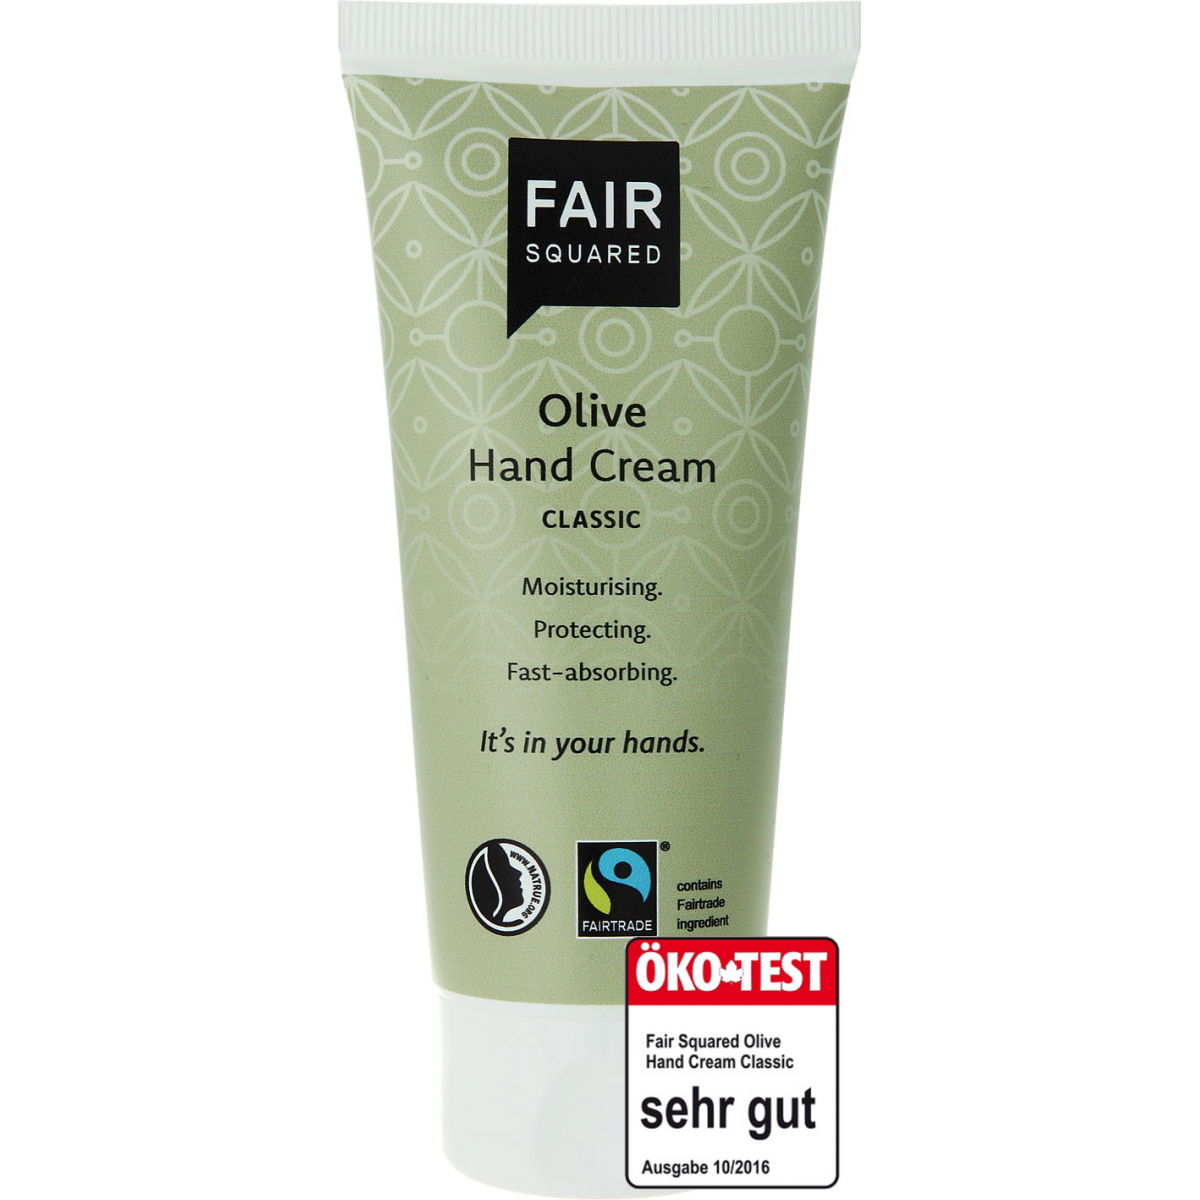 Hand Cream Classic Olive Oekotest